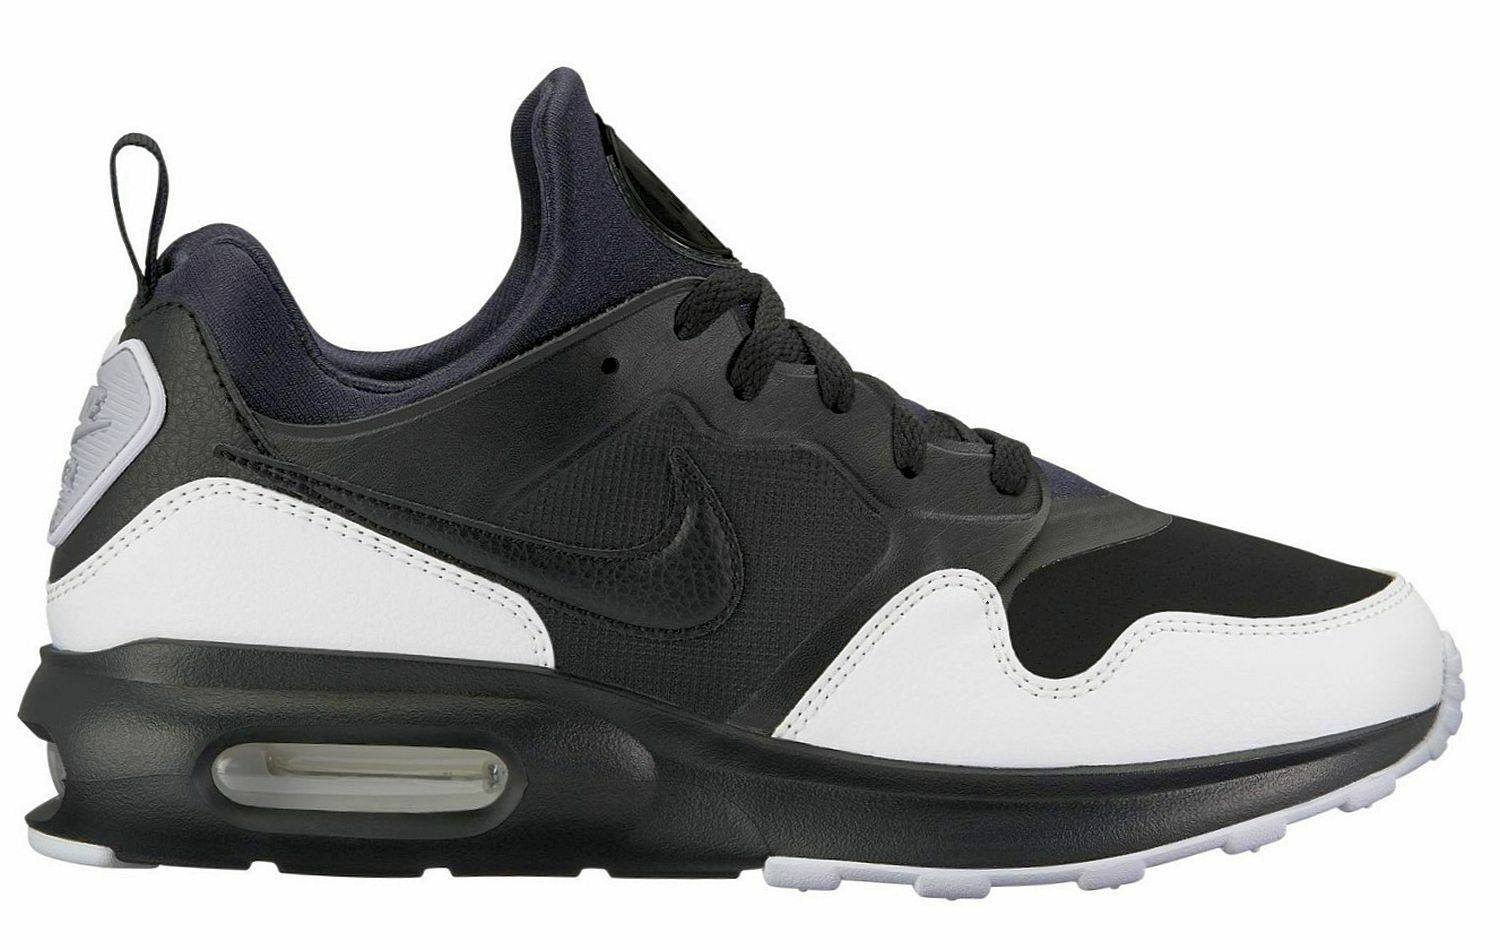 Nike Men's Casual shoes Air Max Prime Sl Black White